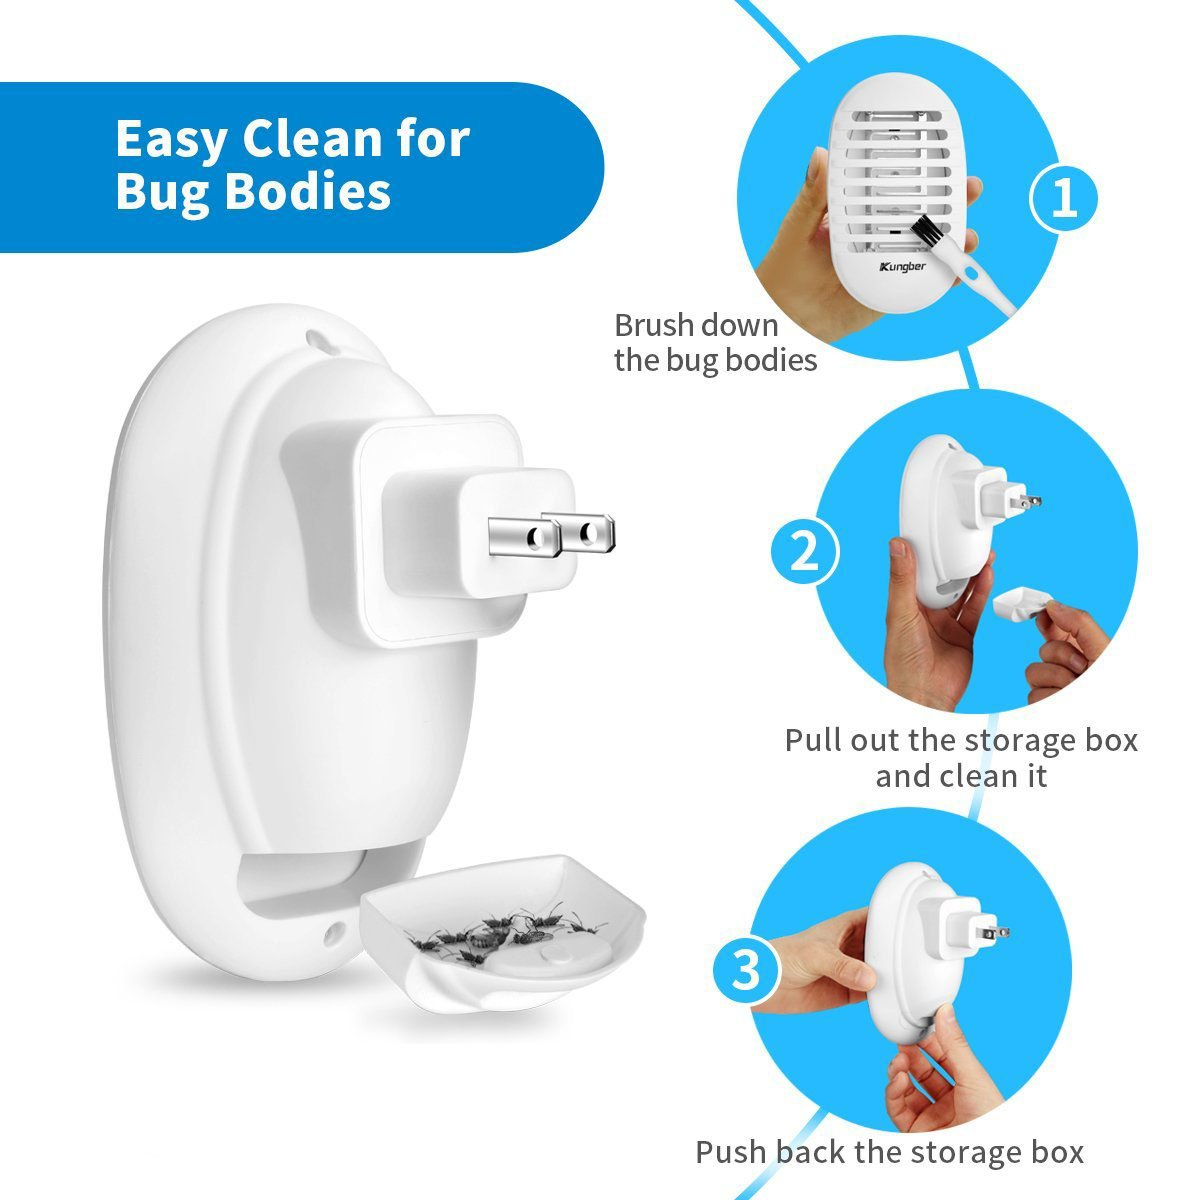 Gugou Bug Zapper Mosquito Killer Indoor Insect Fly Circuit Simple Electronics Lamp Electronic Plug In Repeller Home Use White Garden Outdoor